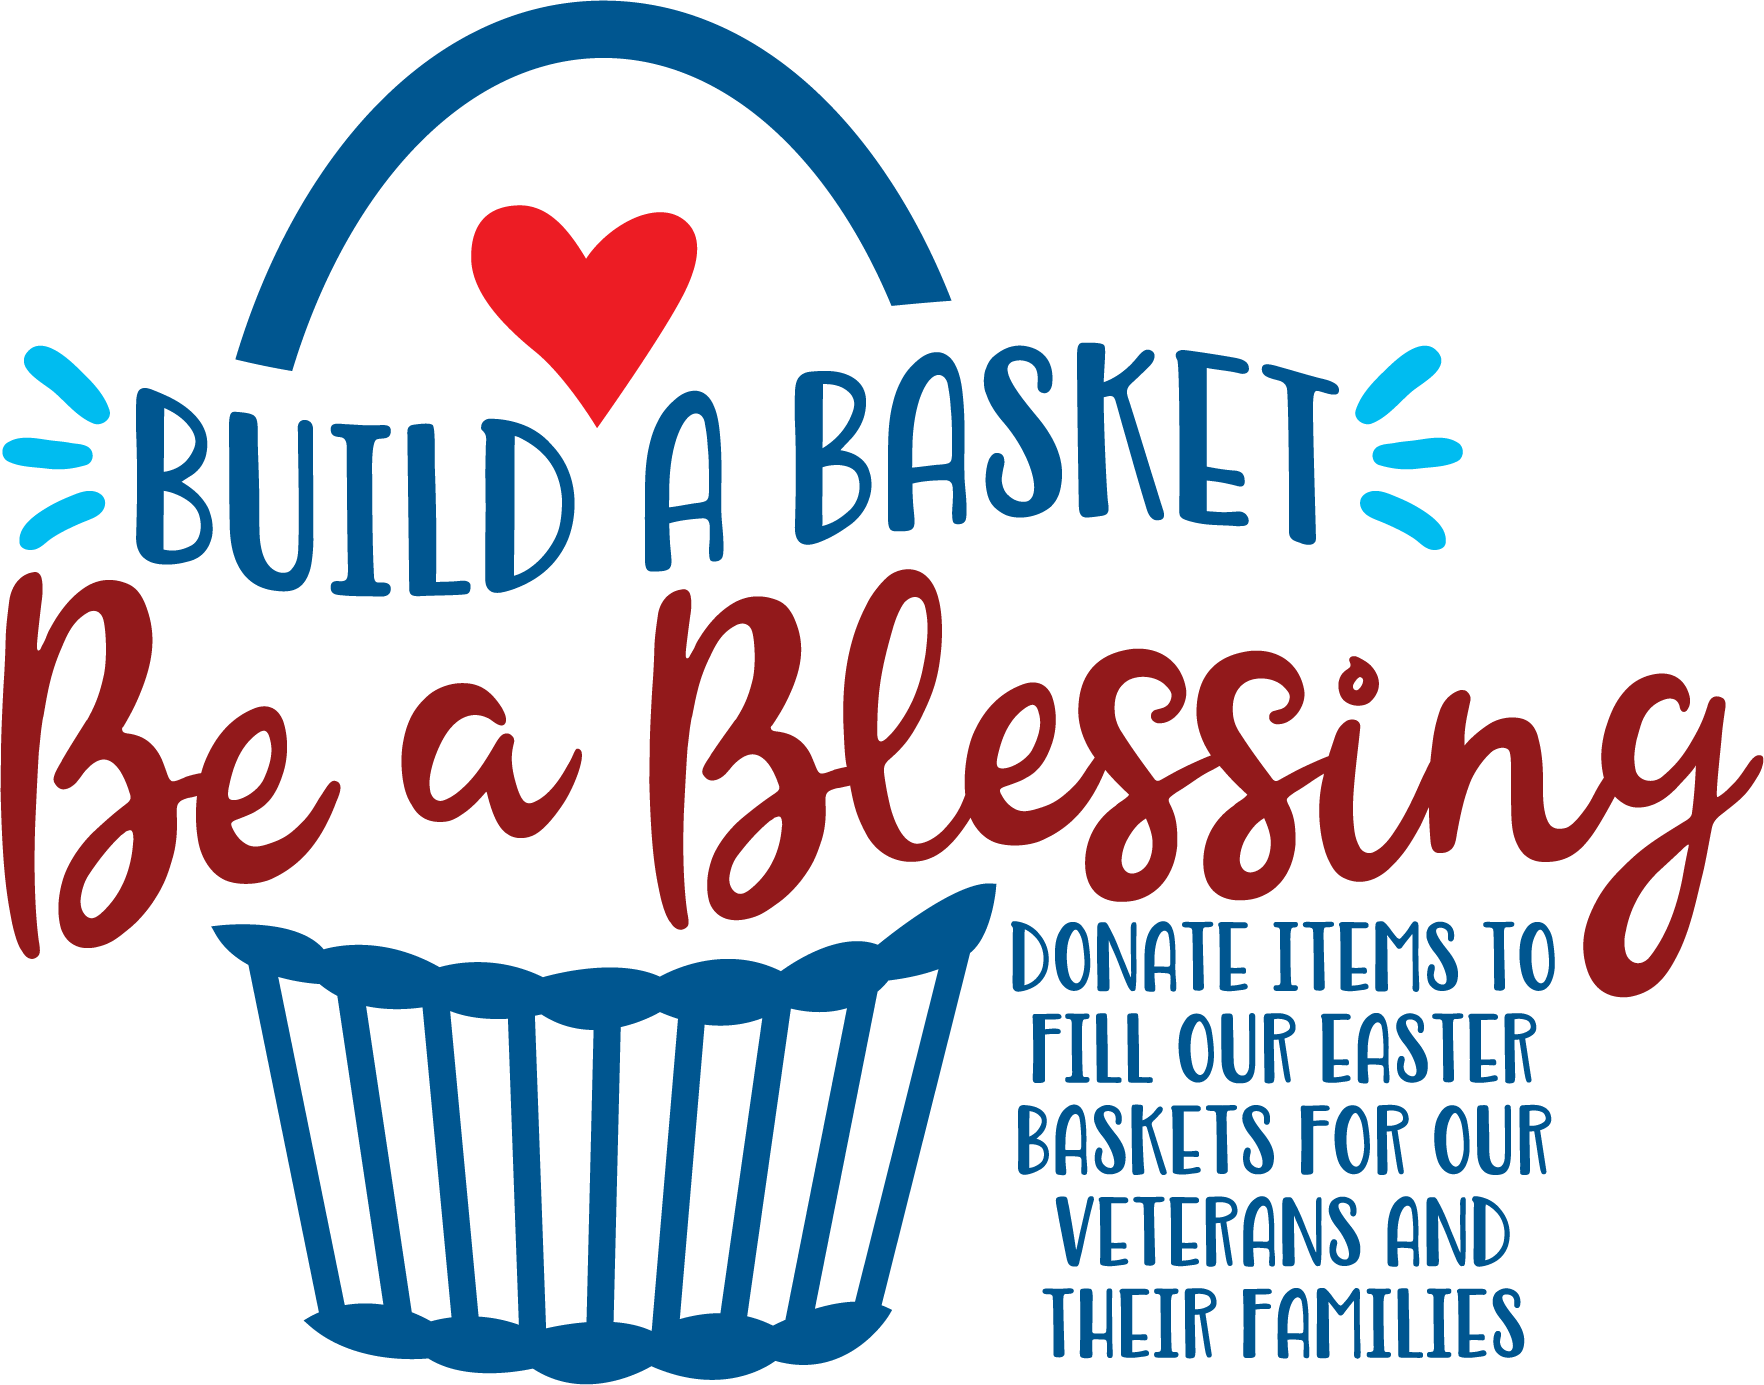 Build a Basket Fundraiser for Military Families